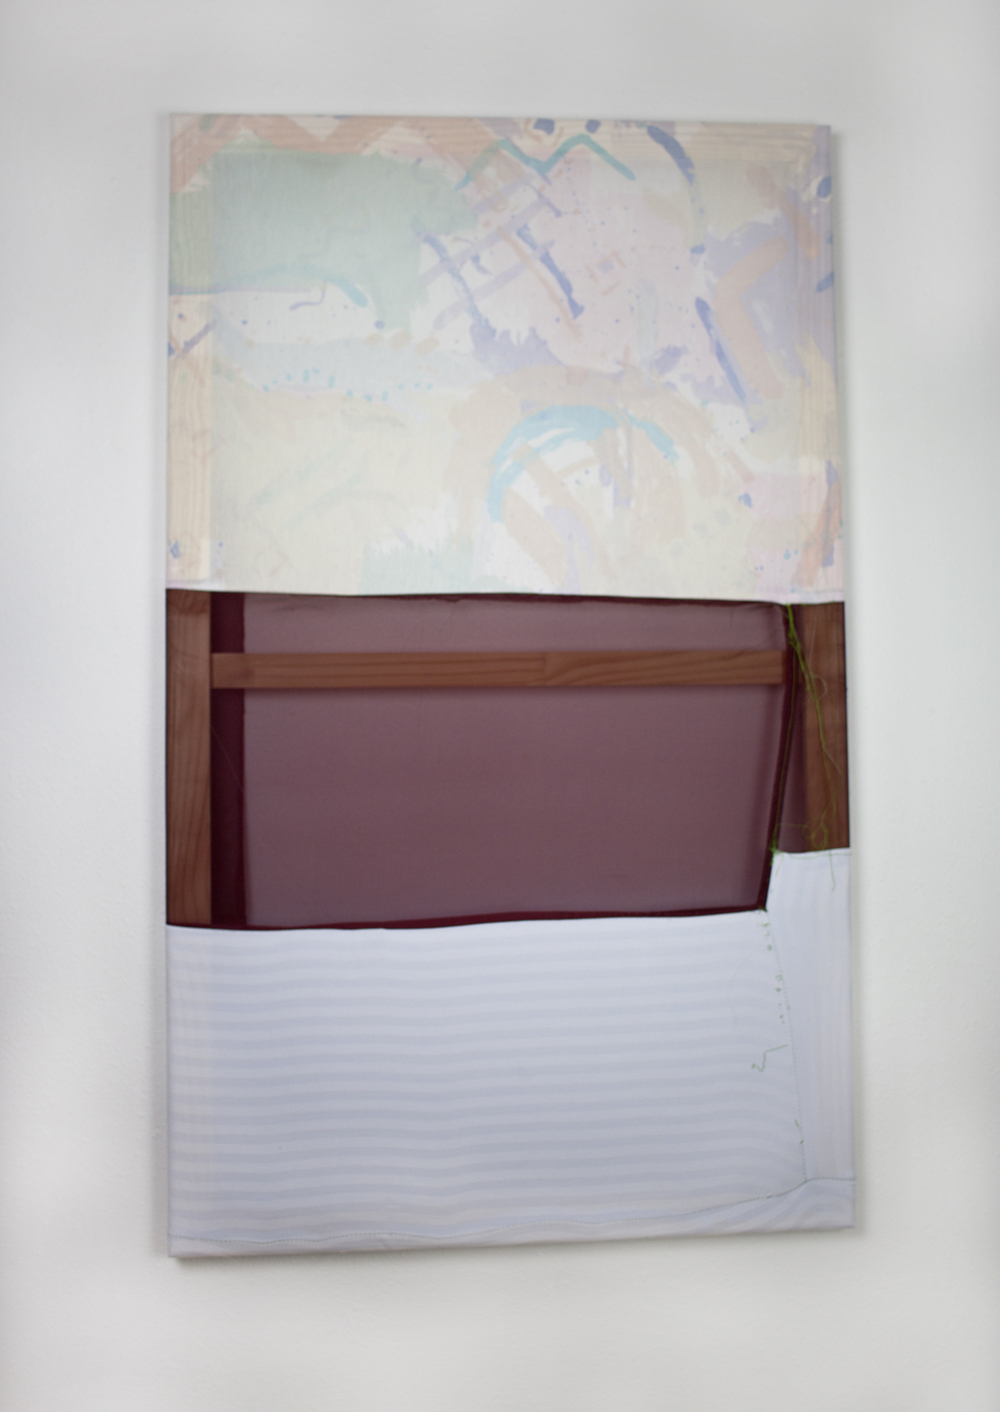 Tameka Norris   Gomer (Contrapposto series) , 2013 bedsheets, found fabric, and thread 50 x 30 inches 127 x 76.2 cm